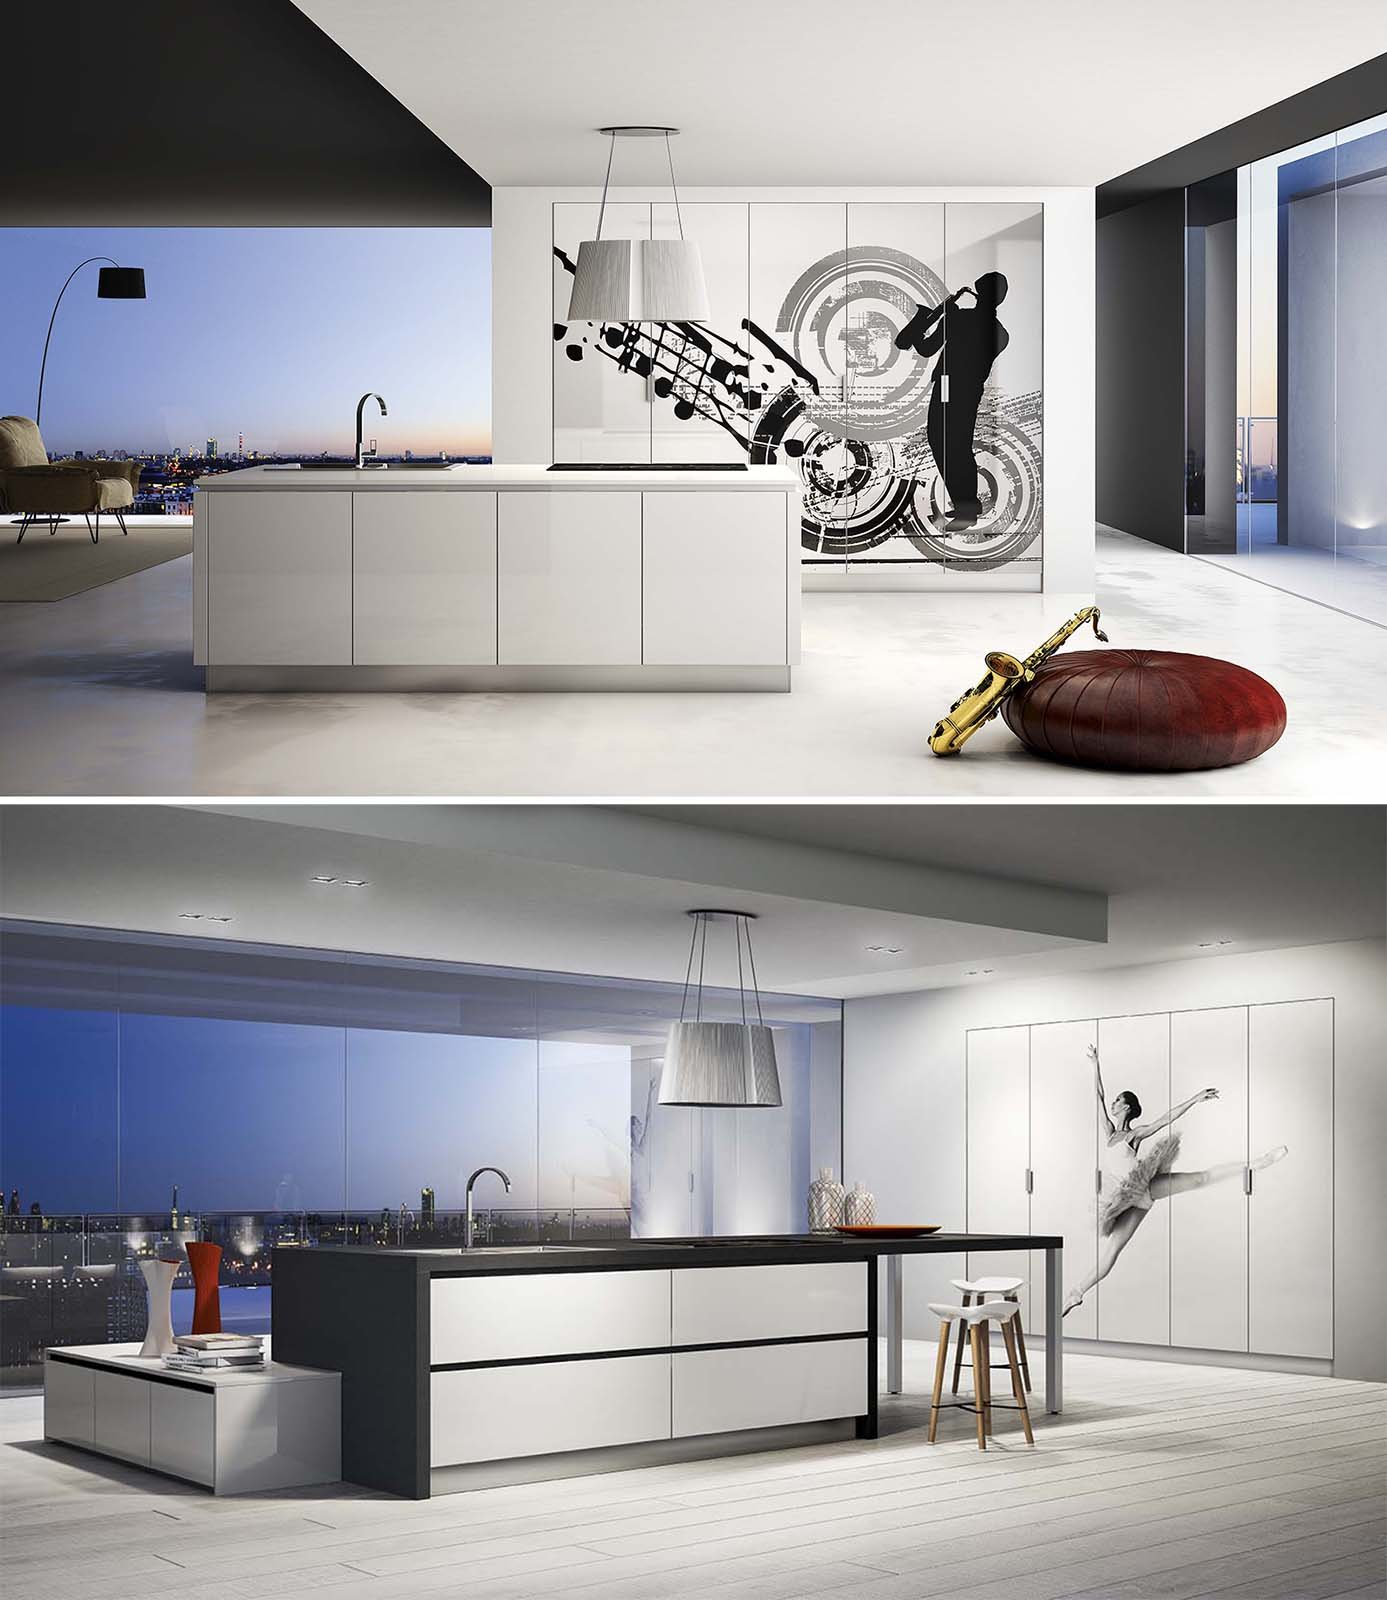 Cucine decorate per un ambiente originale e vivace cose di casa - Cucine decorate ...